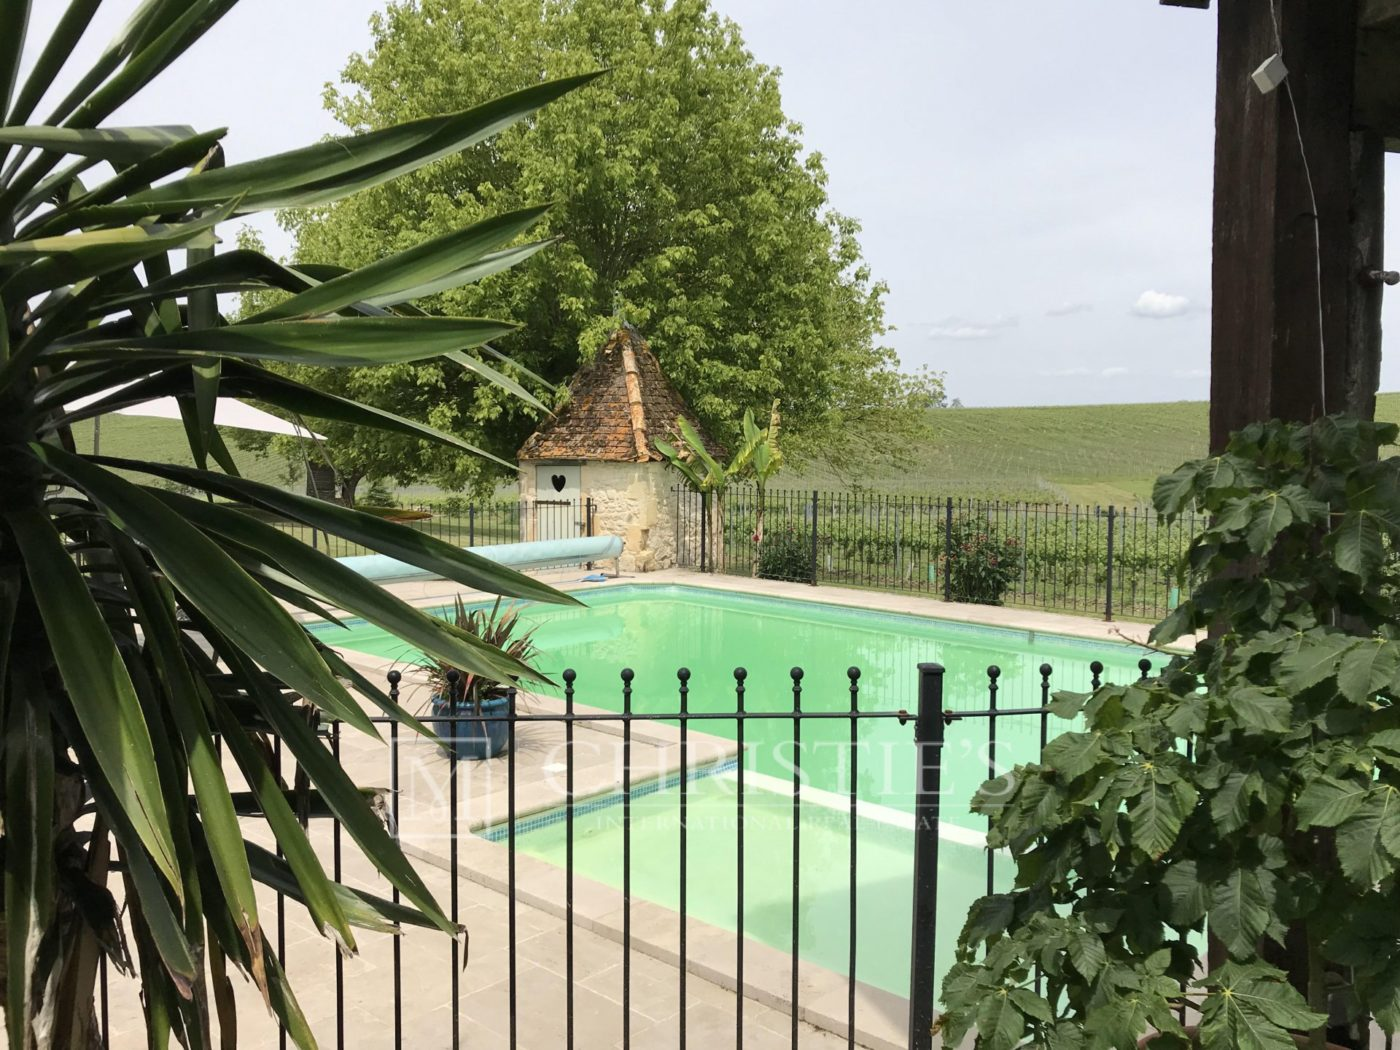 Swimming pool - Country House/Chateau with Boutique Vineyard